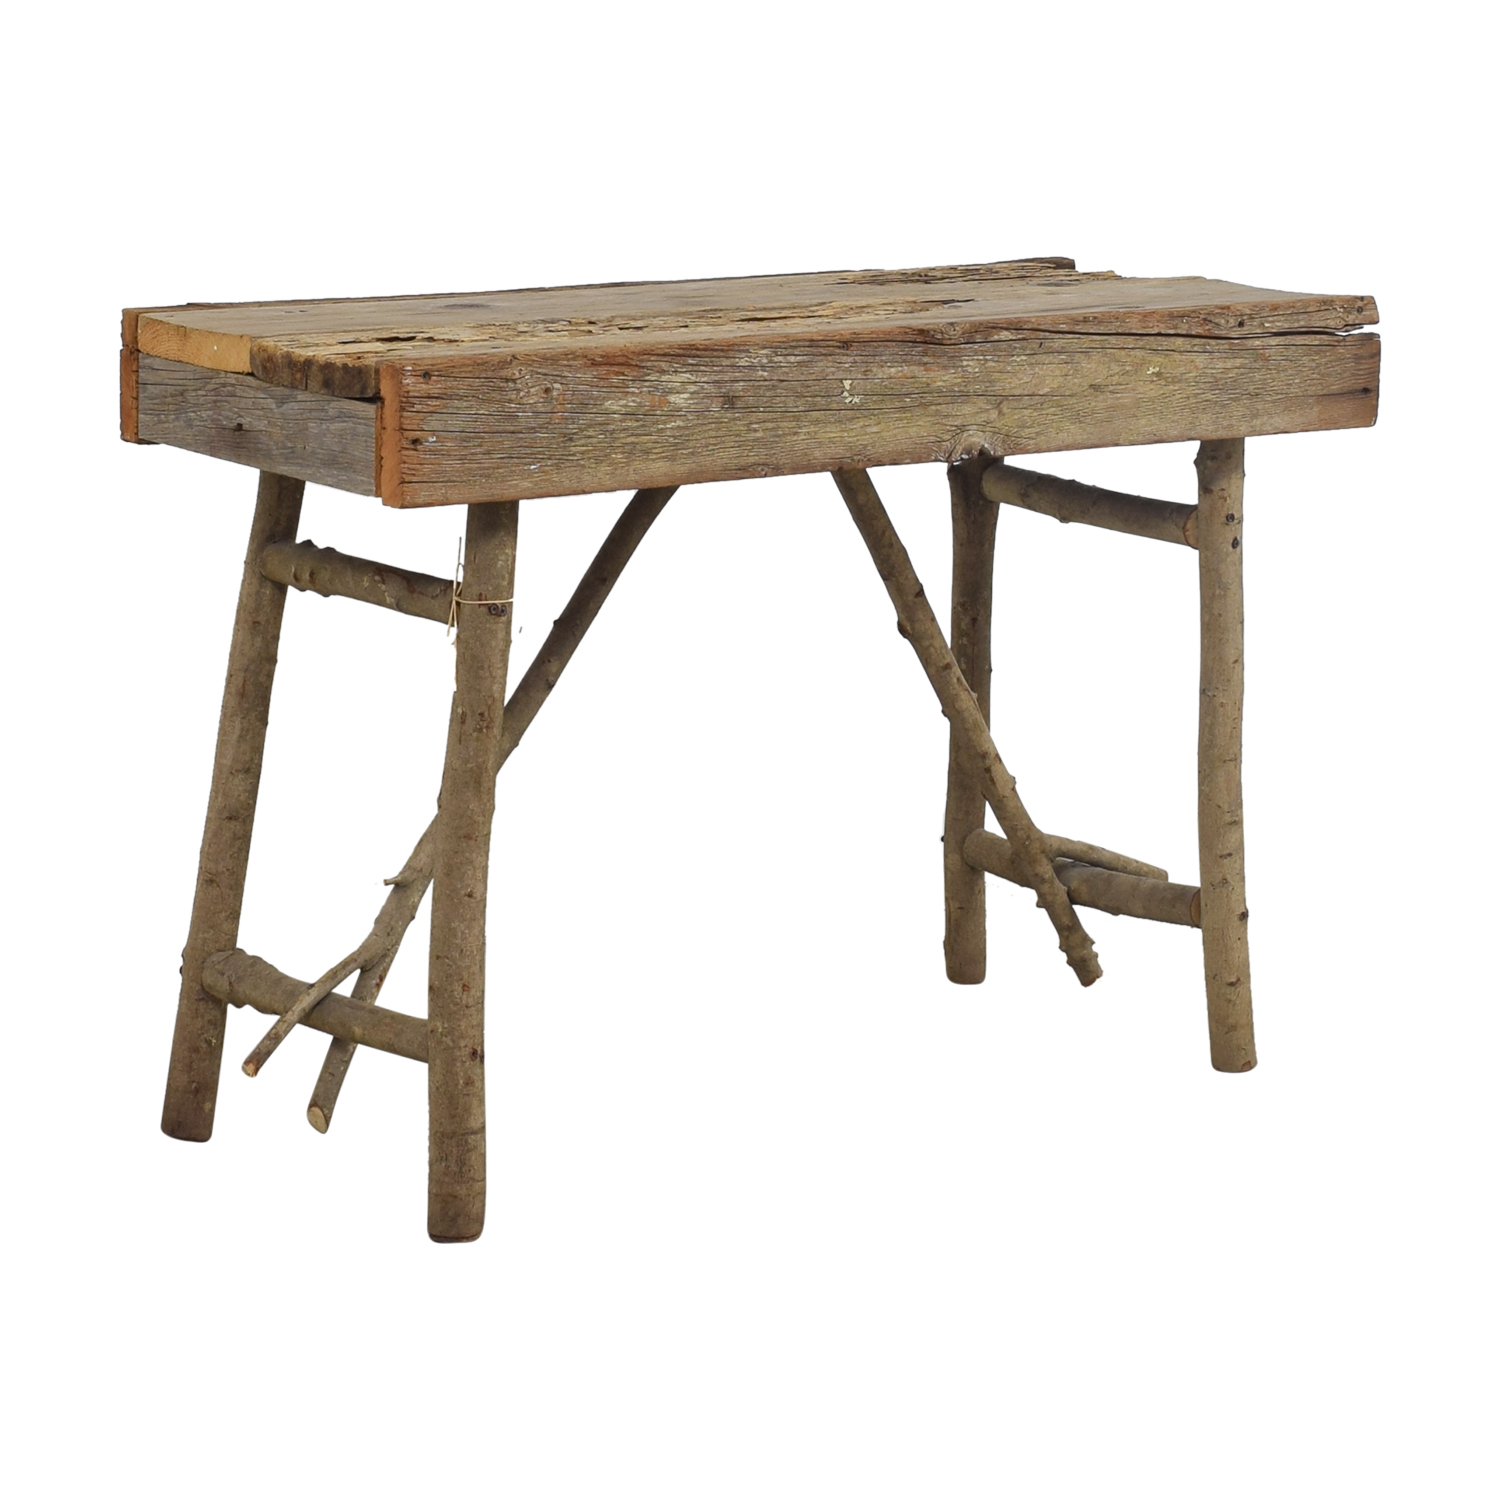 off rustic wood accent table tables second hand nyc iron nesting pier imports patio furniture console chest drawers pearl drum throne metal hairpin leg oak chairside end gold side